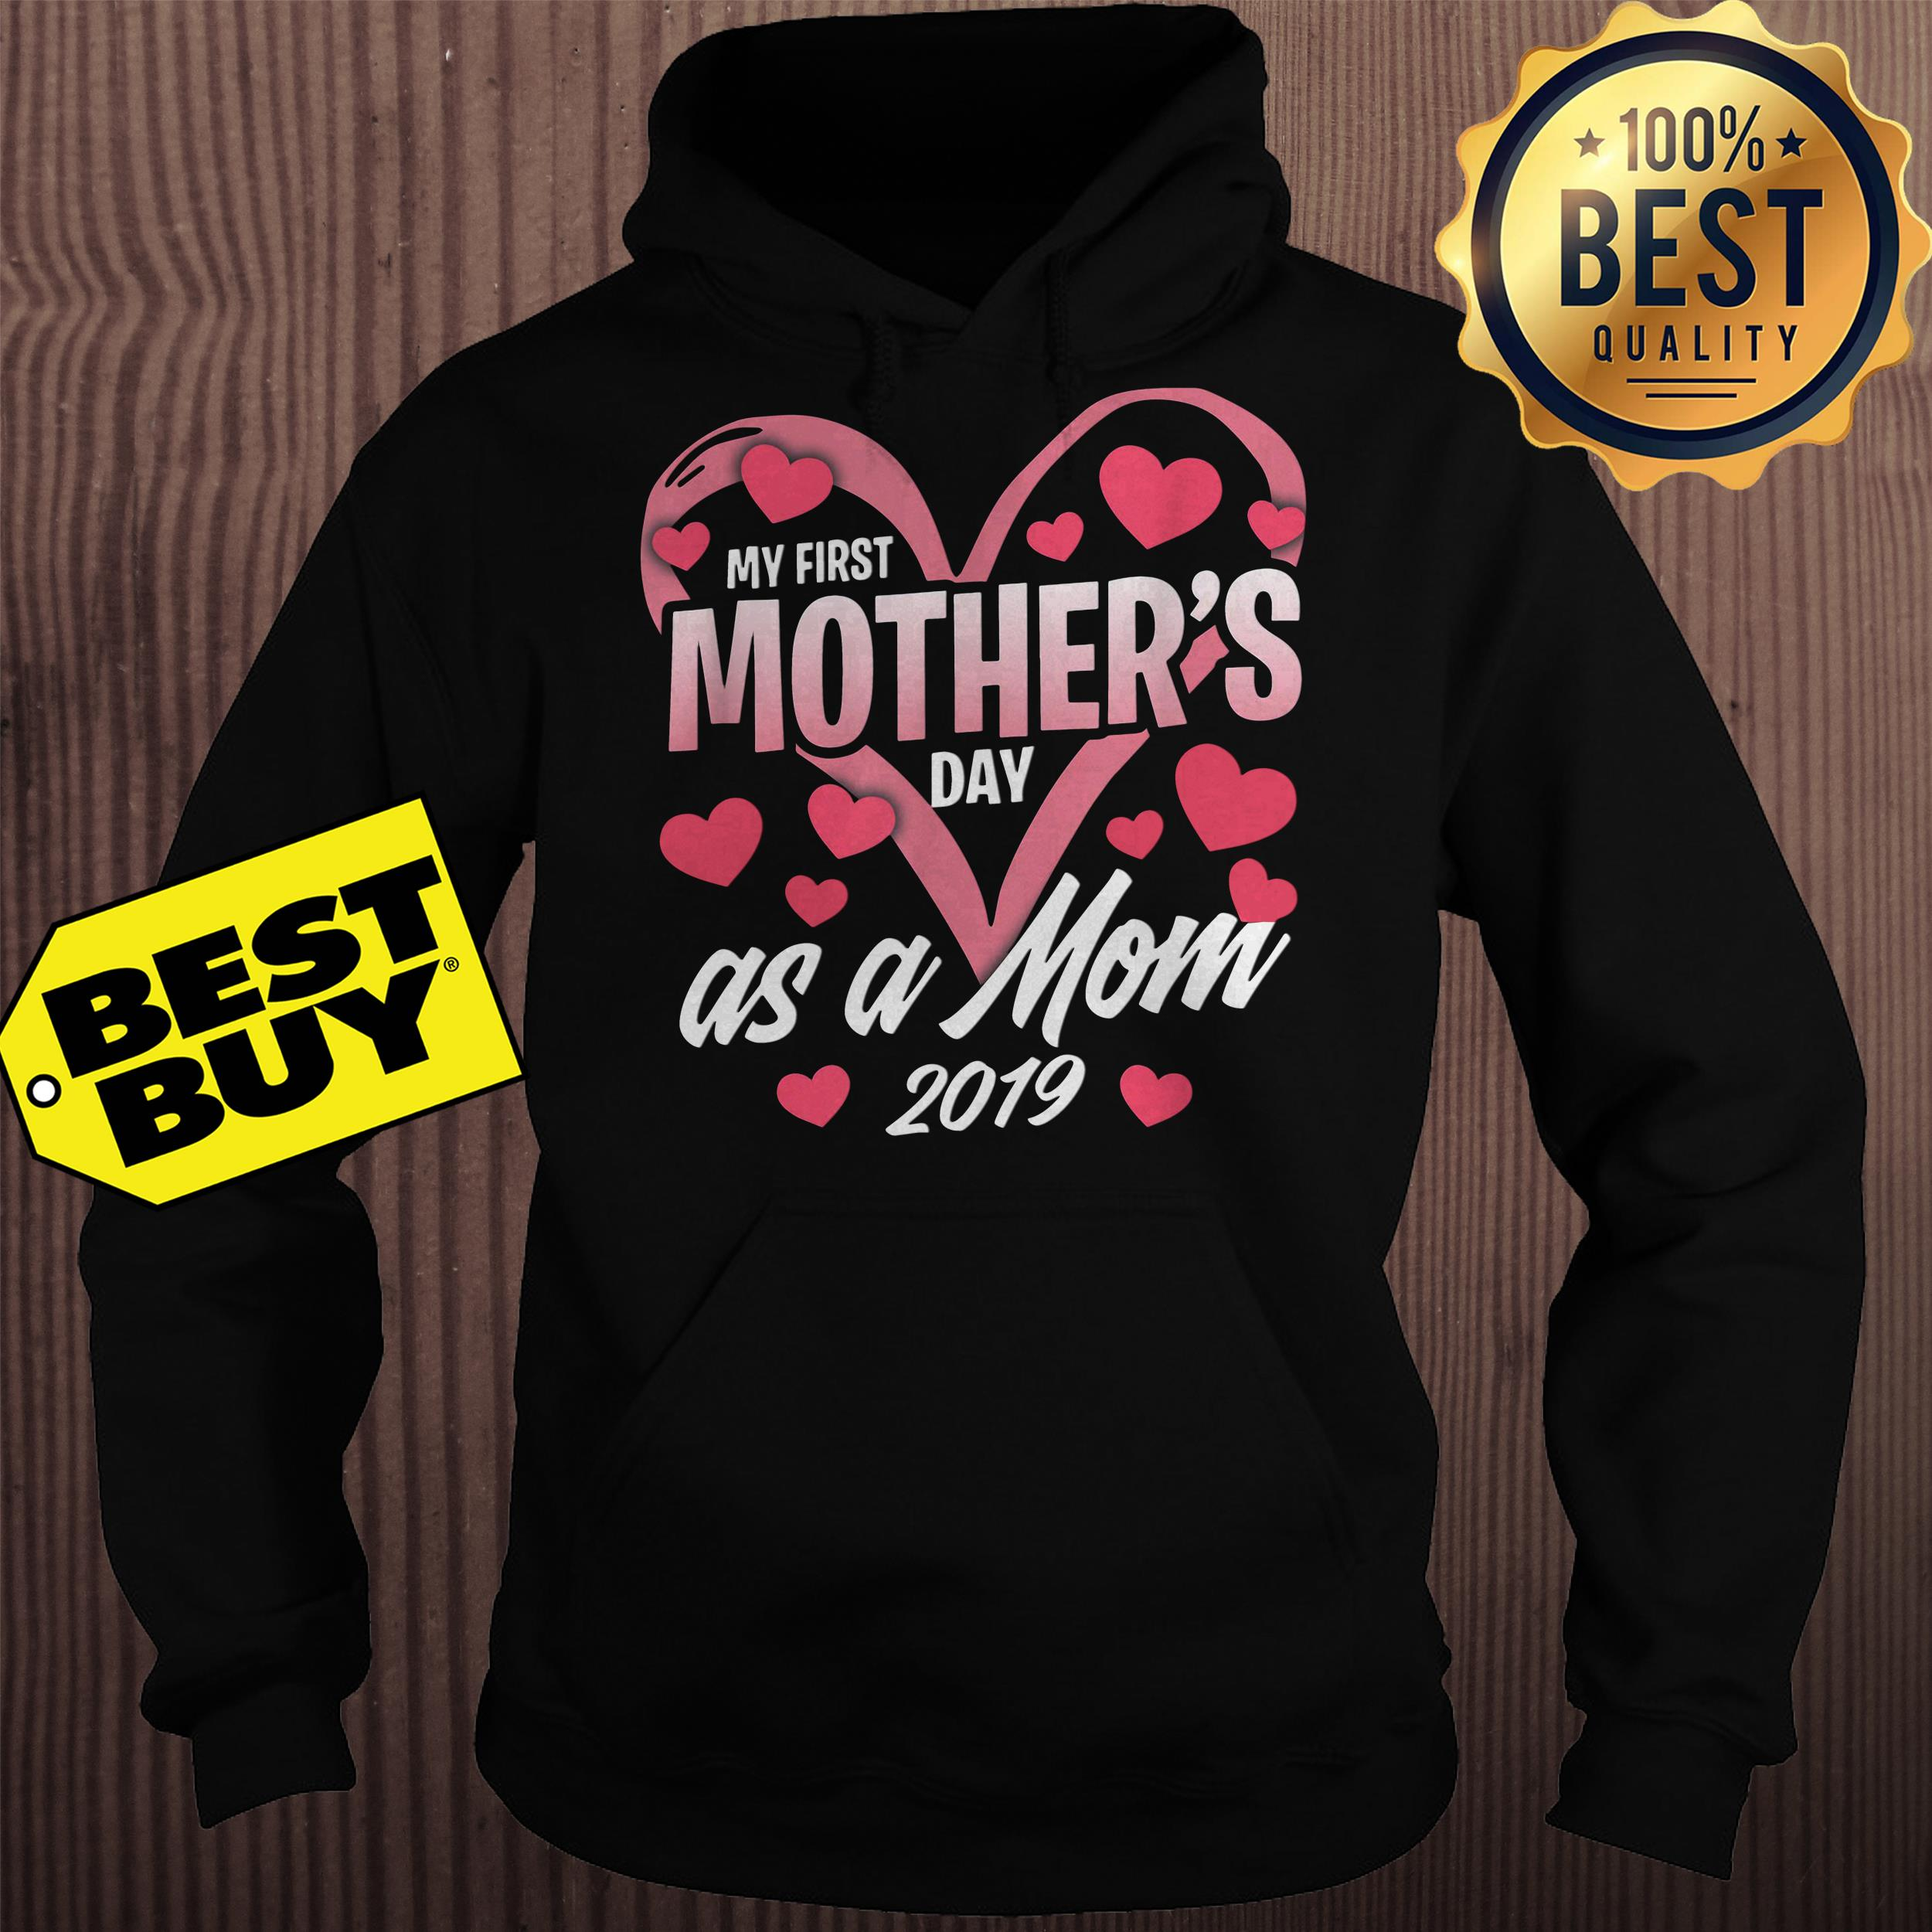 My first mother's day as a mom 2019 hoodie